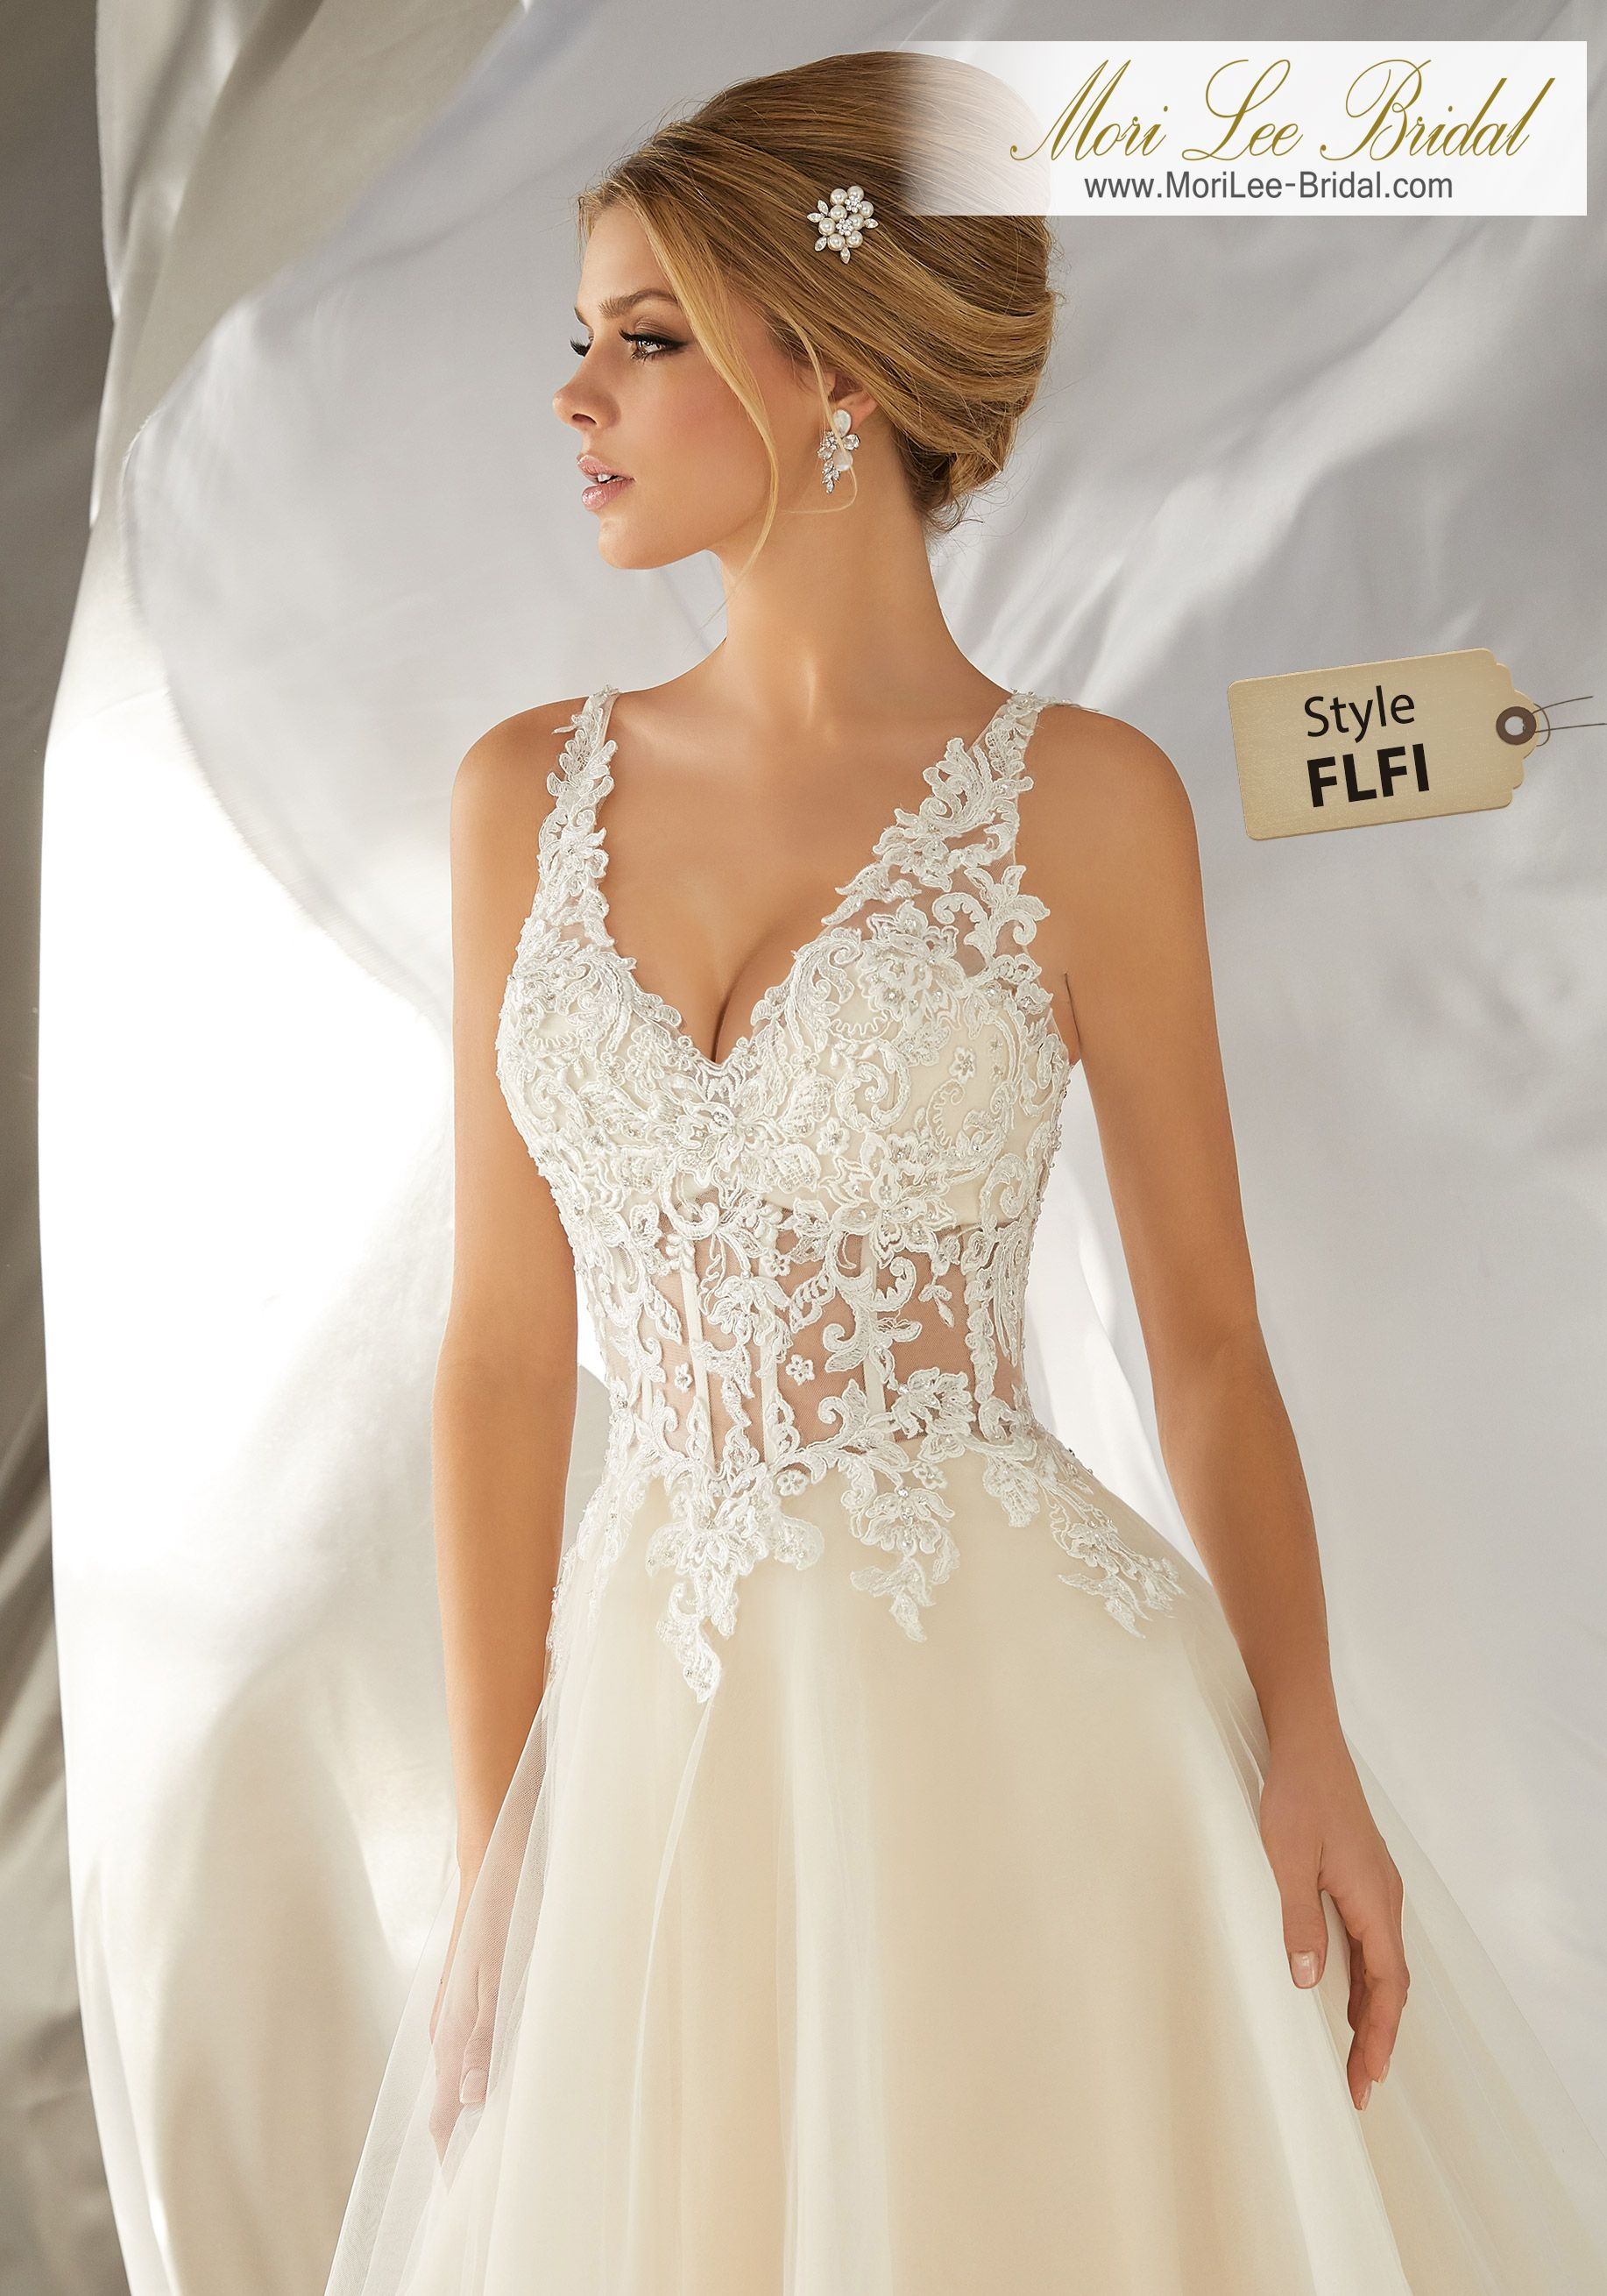 Mori Lee Wedding Dress Find Mori Lee And More At Aria Bridal In San Diego Ca Ariabridal Com 760 839 274 Ball Dresses Bridal Dresses Online Tulle Ball Gown